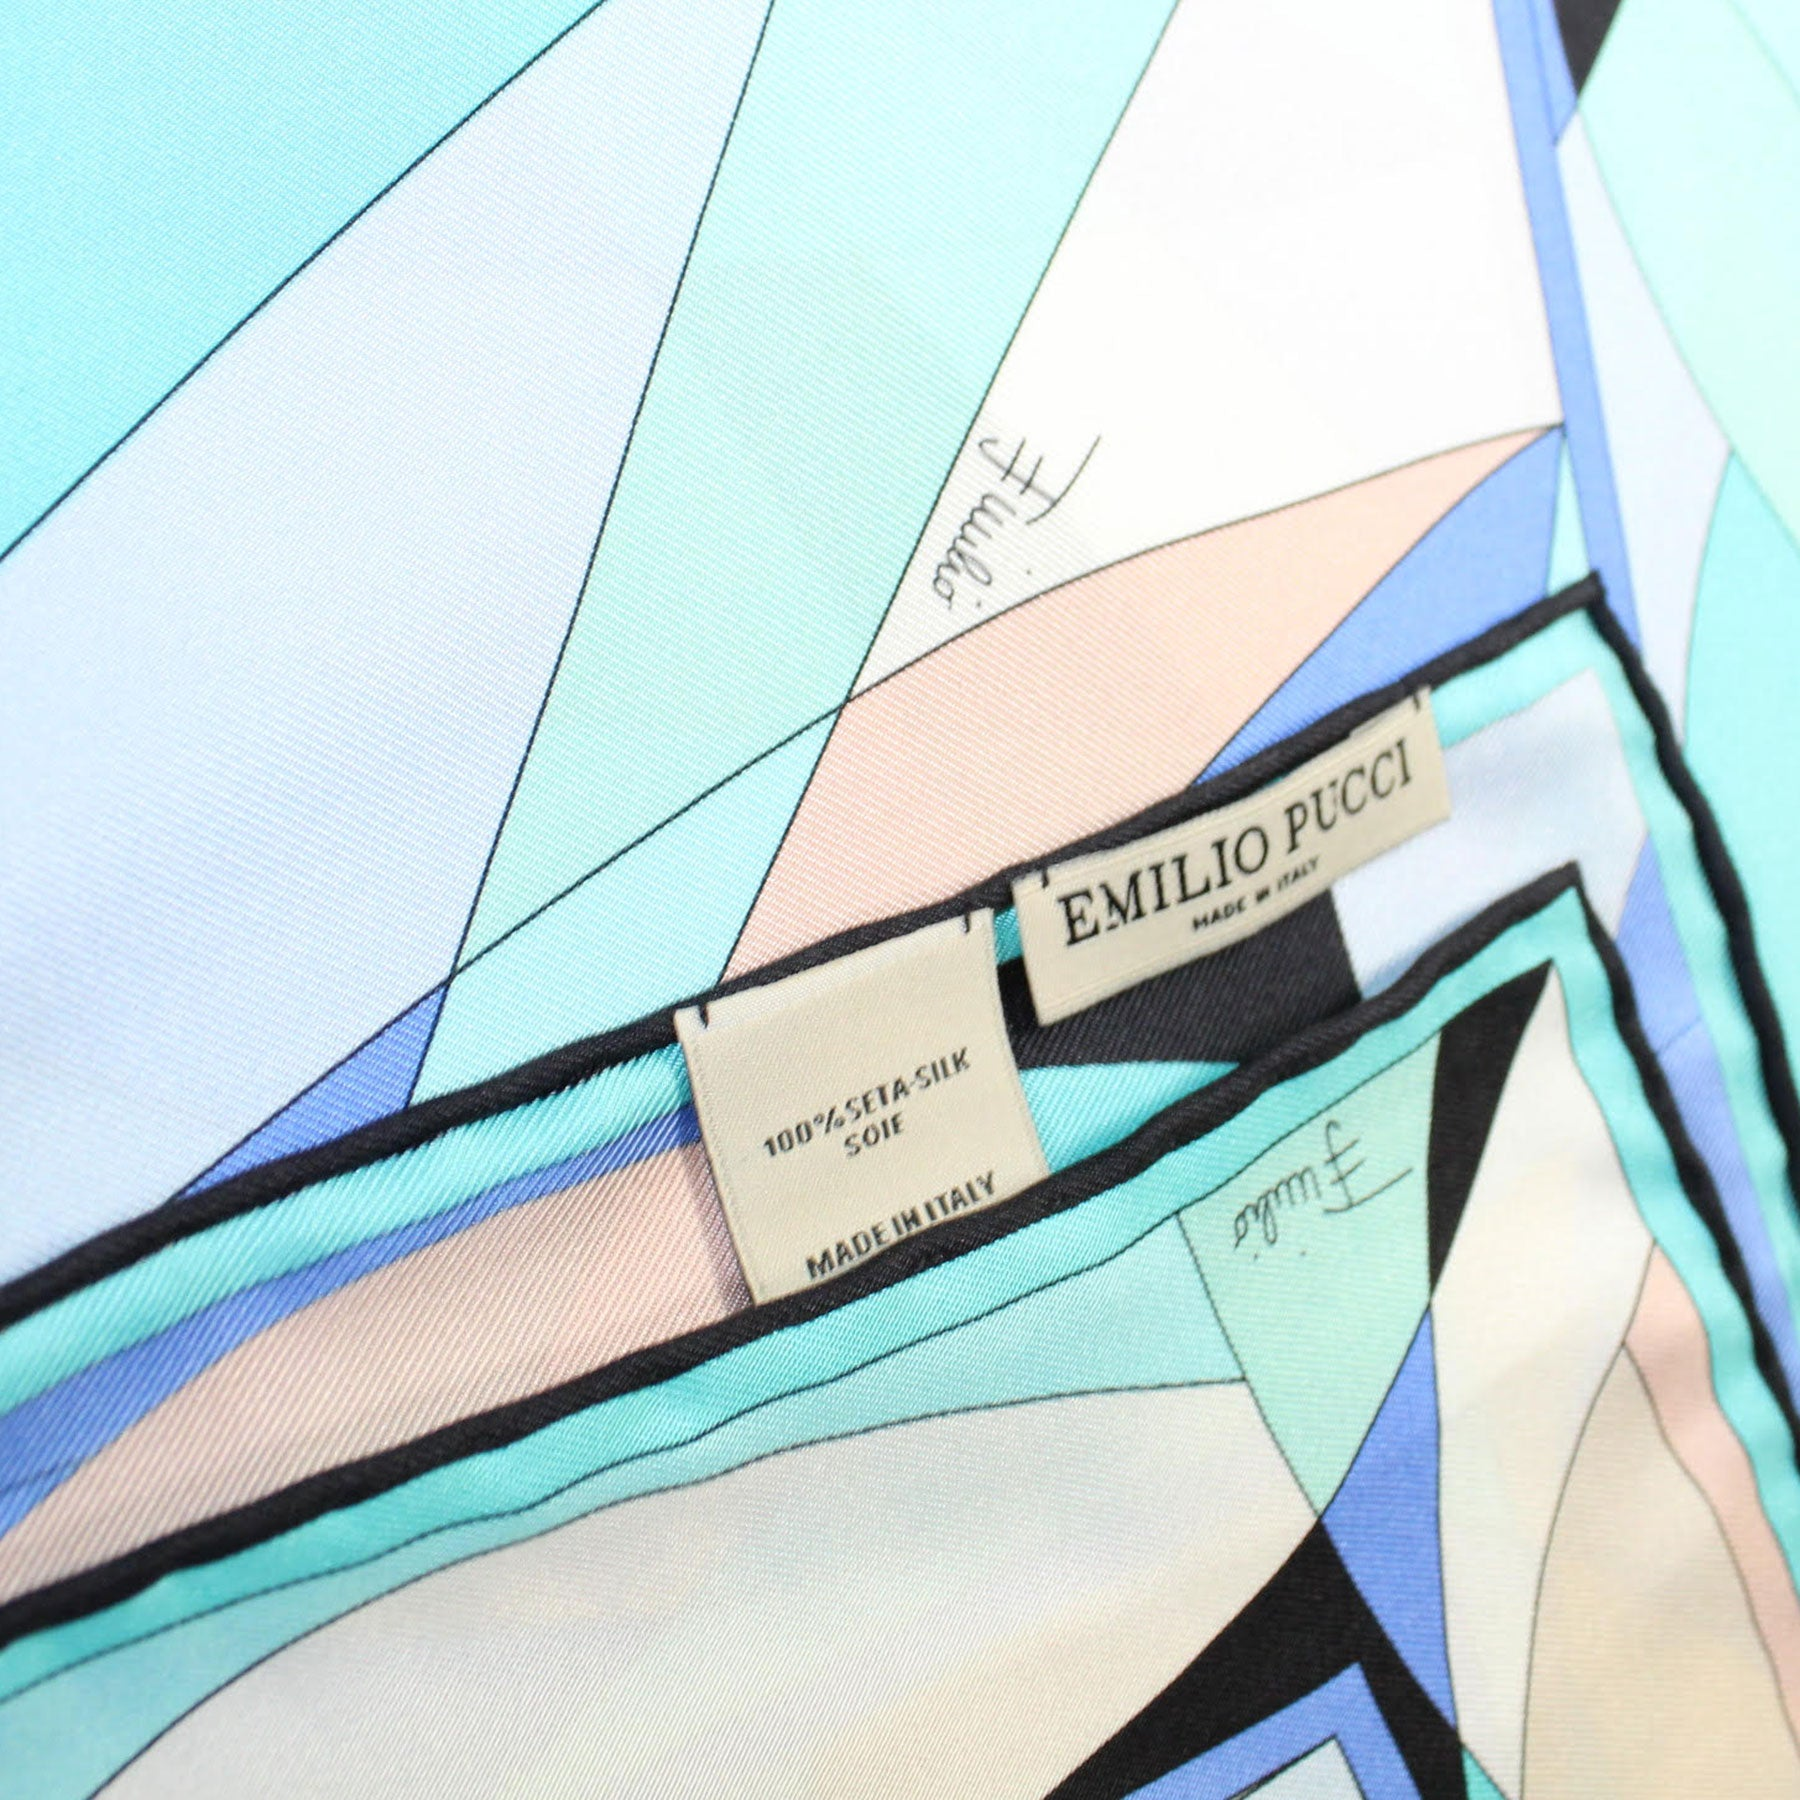 Emilio Pucci Silk Scarf Aqua Black Blue Design - Large Twill Silk Square Scarf